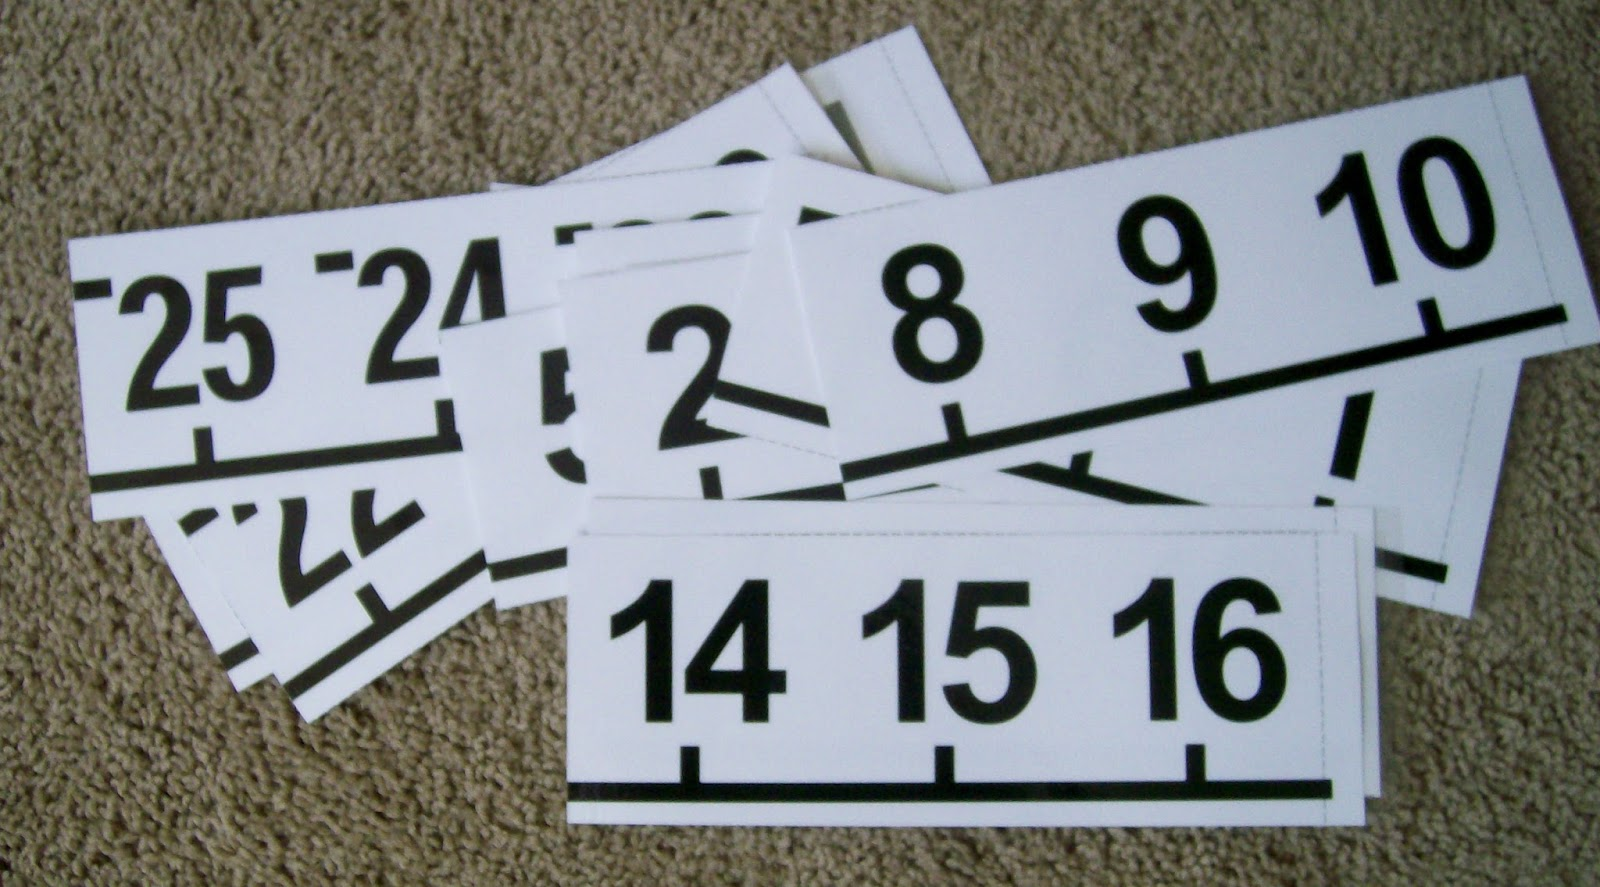 worksheet Number Line Printable math love made 4 printable number line poster printed and laminated pieces